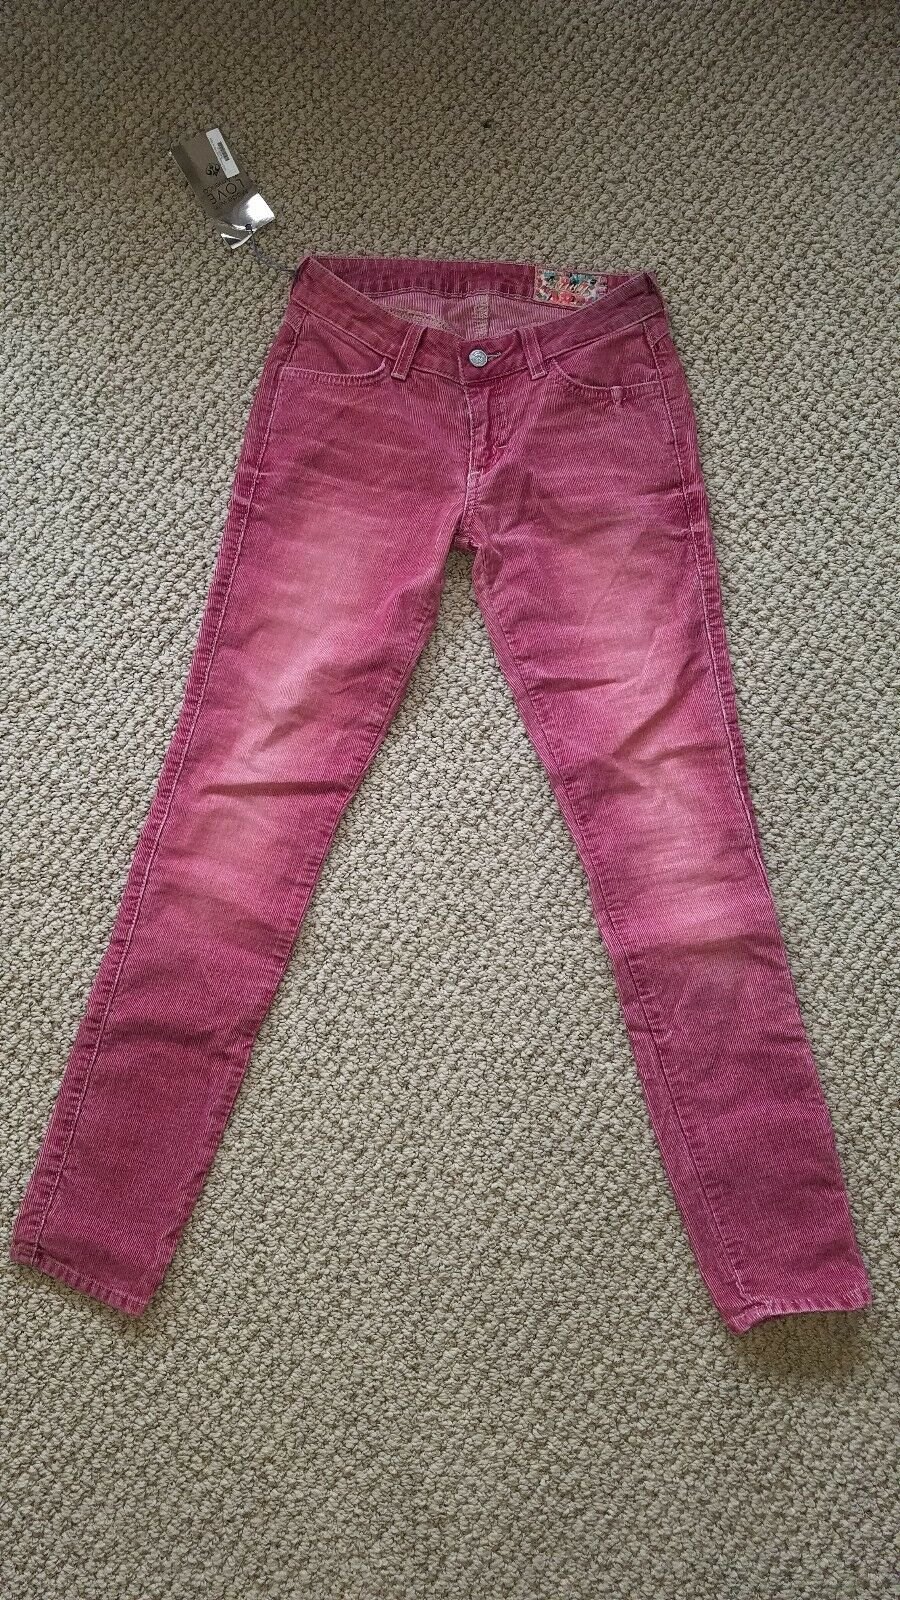 NEVER WORN SIWY JEANS SIZE 24 RED FADED SKINNY JEANS COMFORTABLE